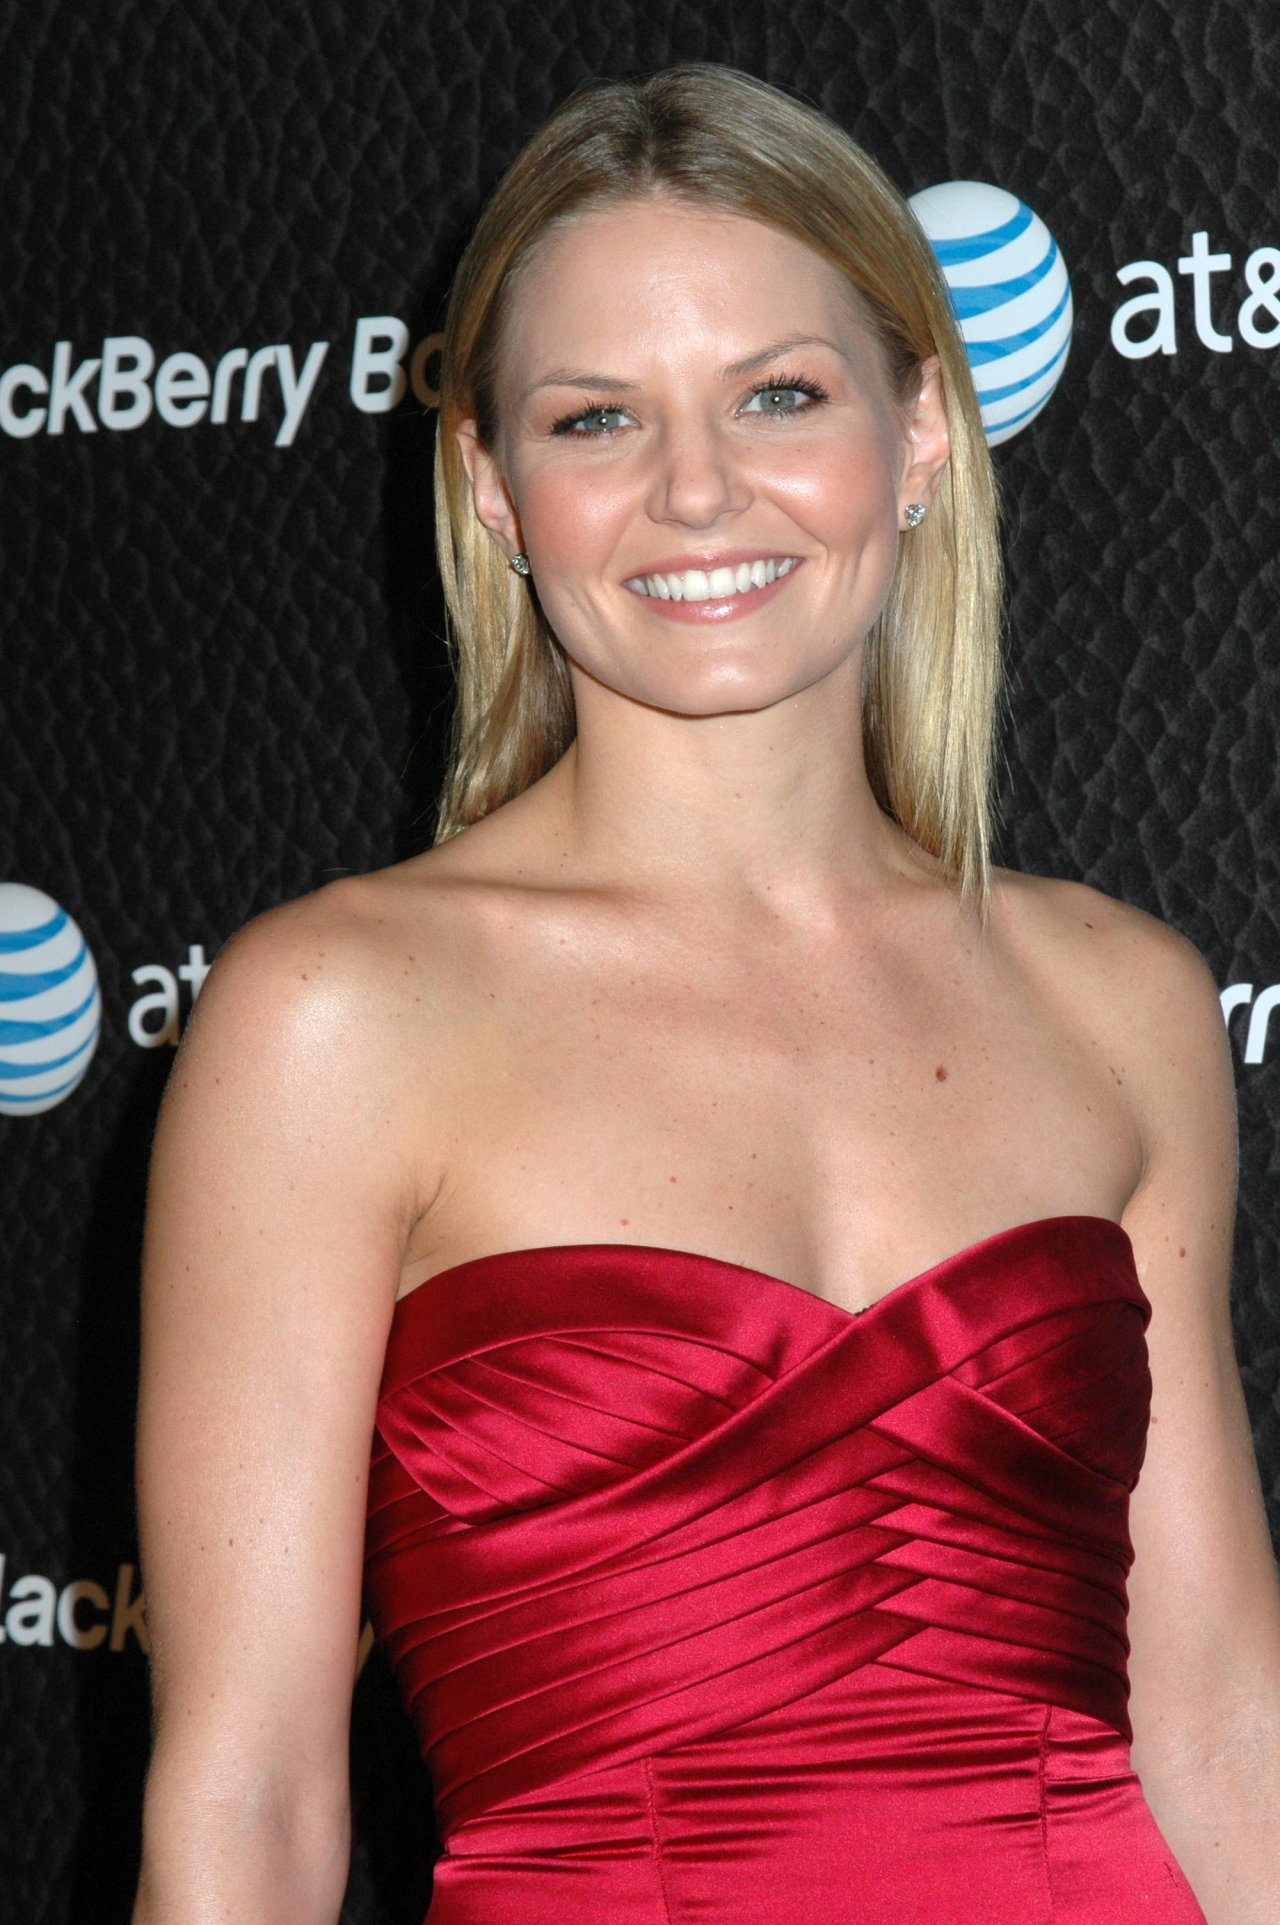 Photo Jennifer Morrison - Wallpapers with a celebrity ...: http://ua-dreams.com/celebrity/jennifer-morrison/aygp.html